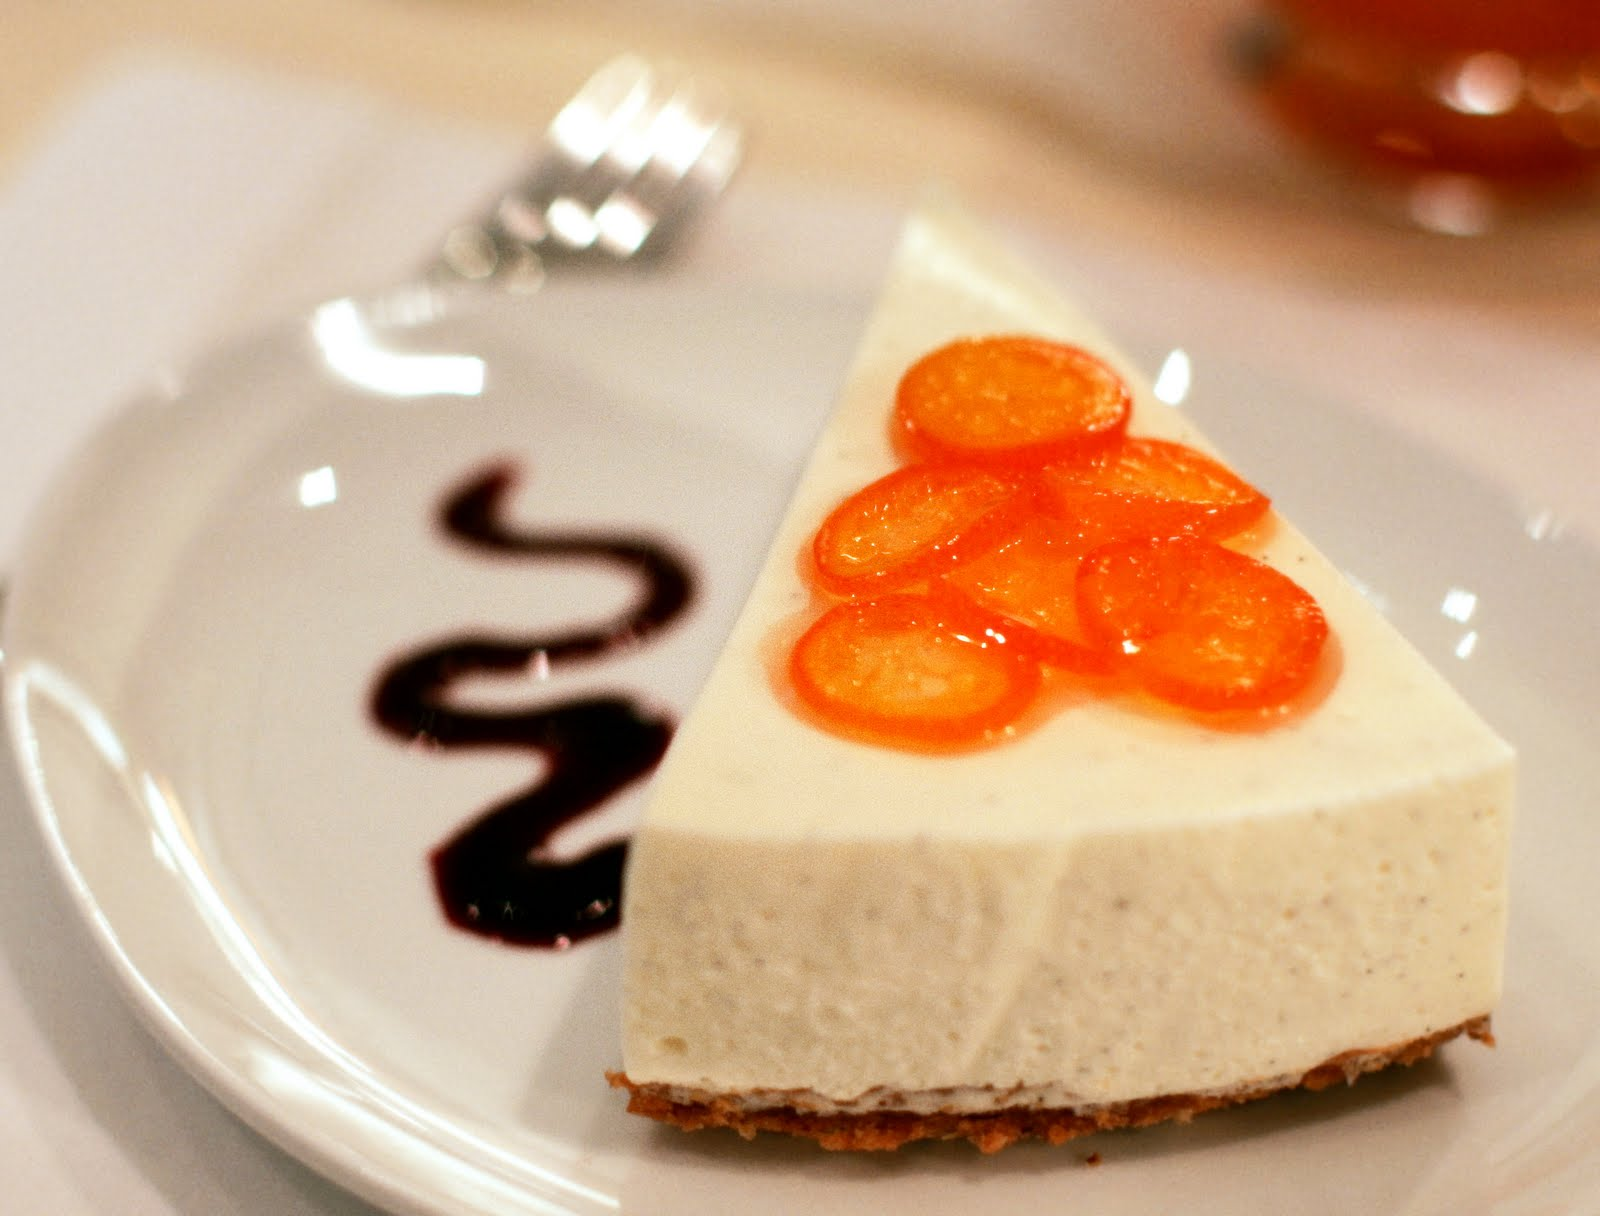 Tish Boyle Sweet Dreams: Whipped Vanilla Bean Cheesecake ...